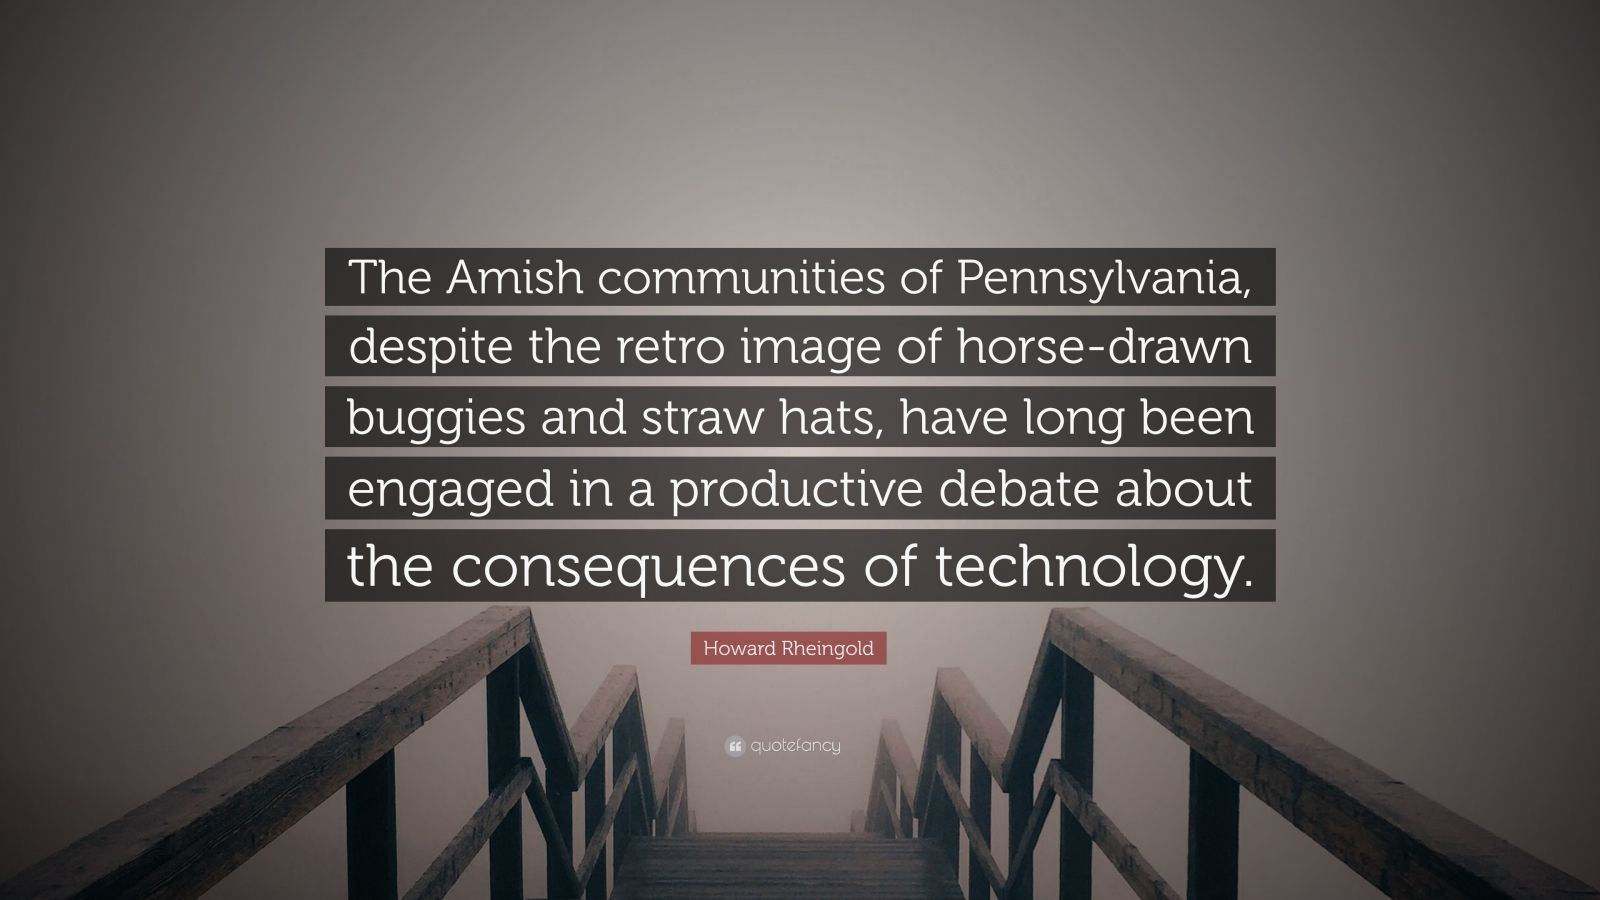 """Howard Rheingold Quote: """"The Amish communities of Pennsylvania, despite the retro image of horse-drawn buggies and straw hats, have long been engaged in a productive debate about the consequences of technology."""""""